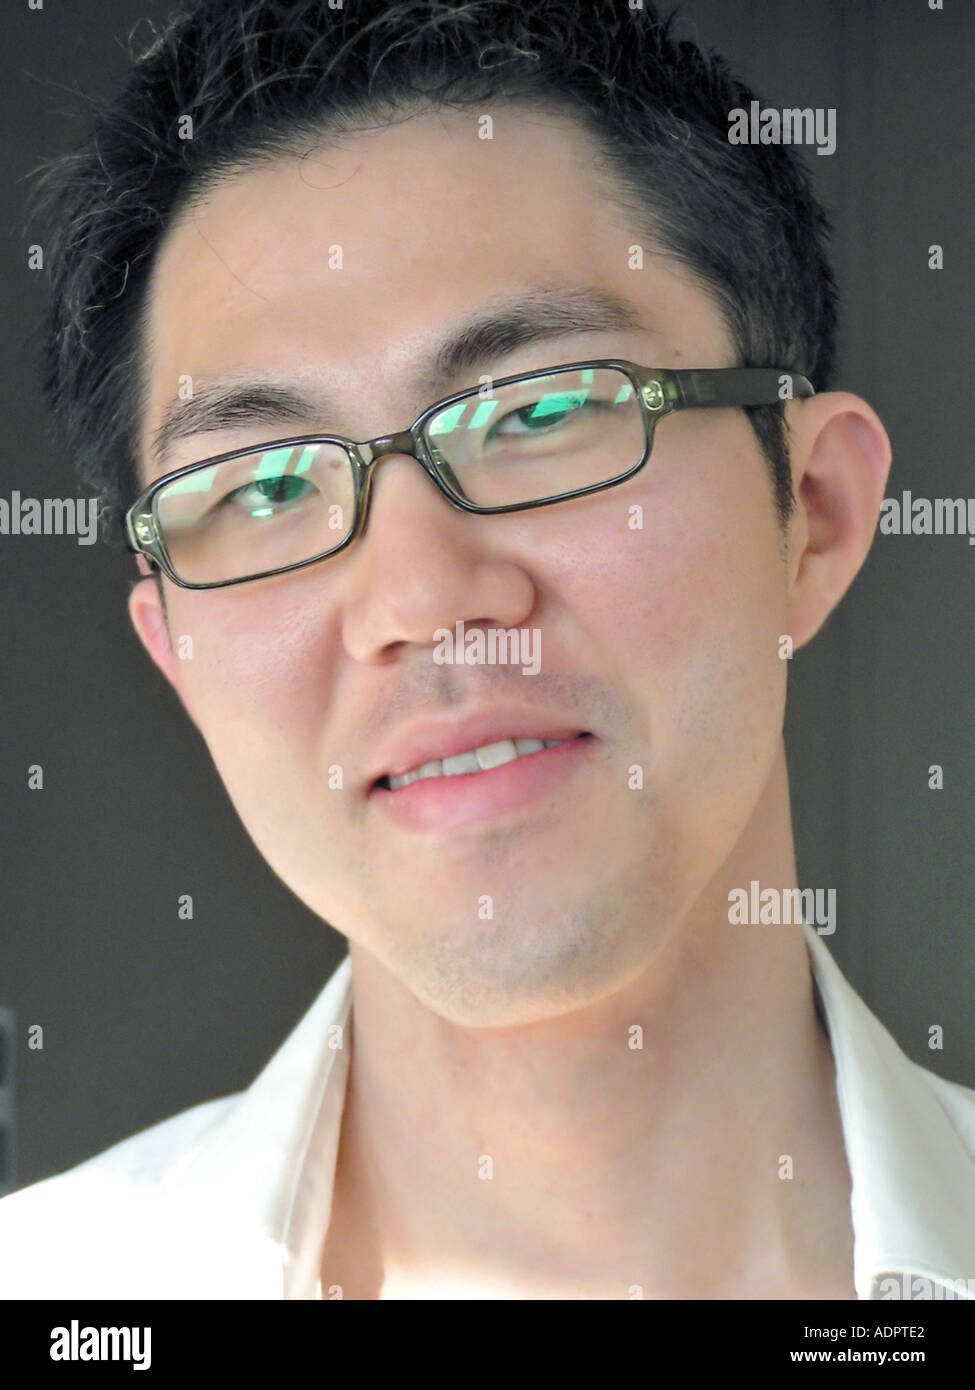 e4ab1df43f Portrait Young Asian Man With Glasses